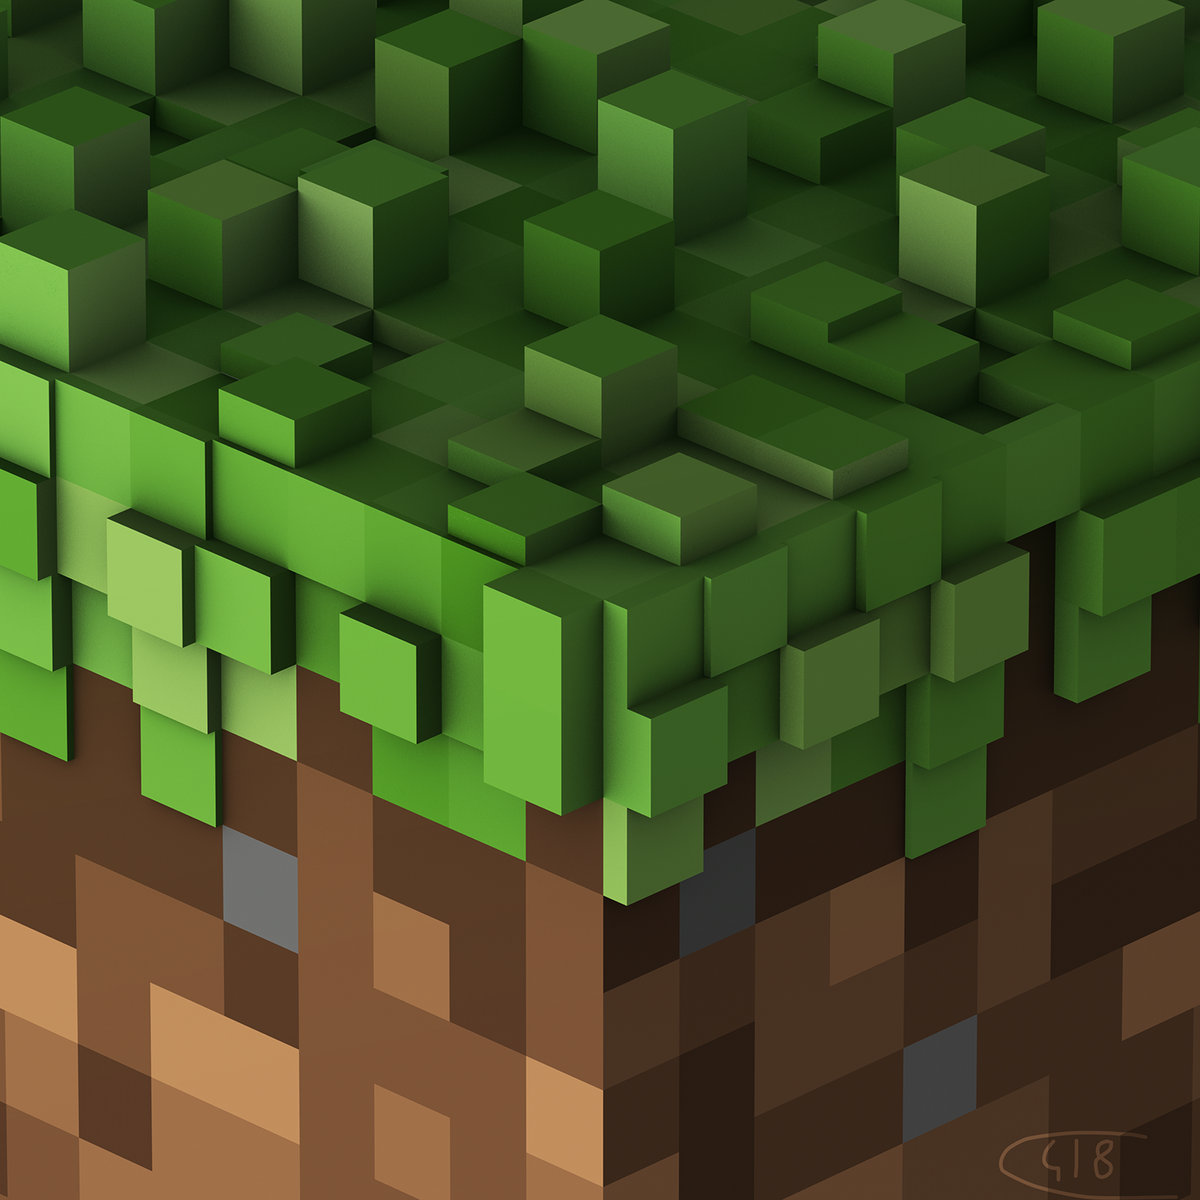 Minecraft - Volume Alpha | C418